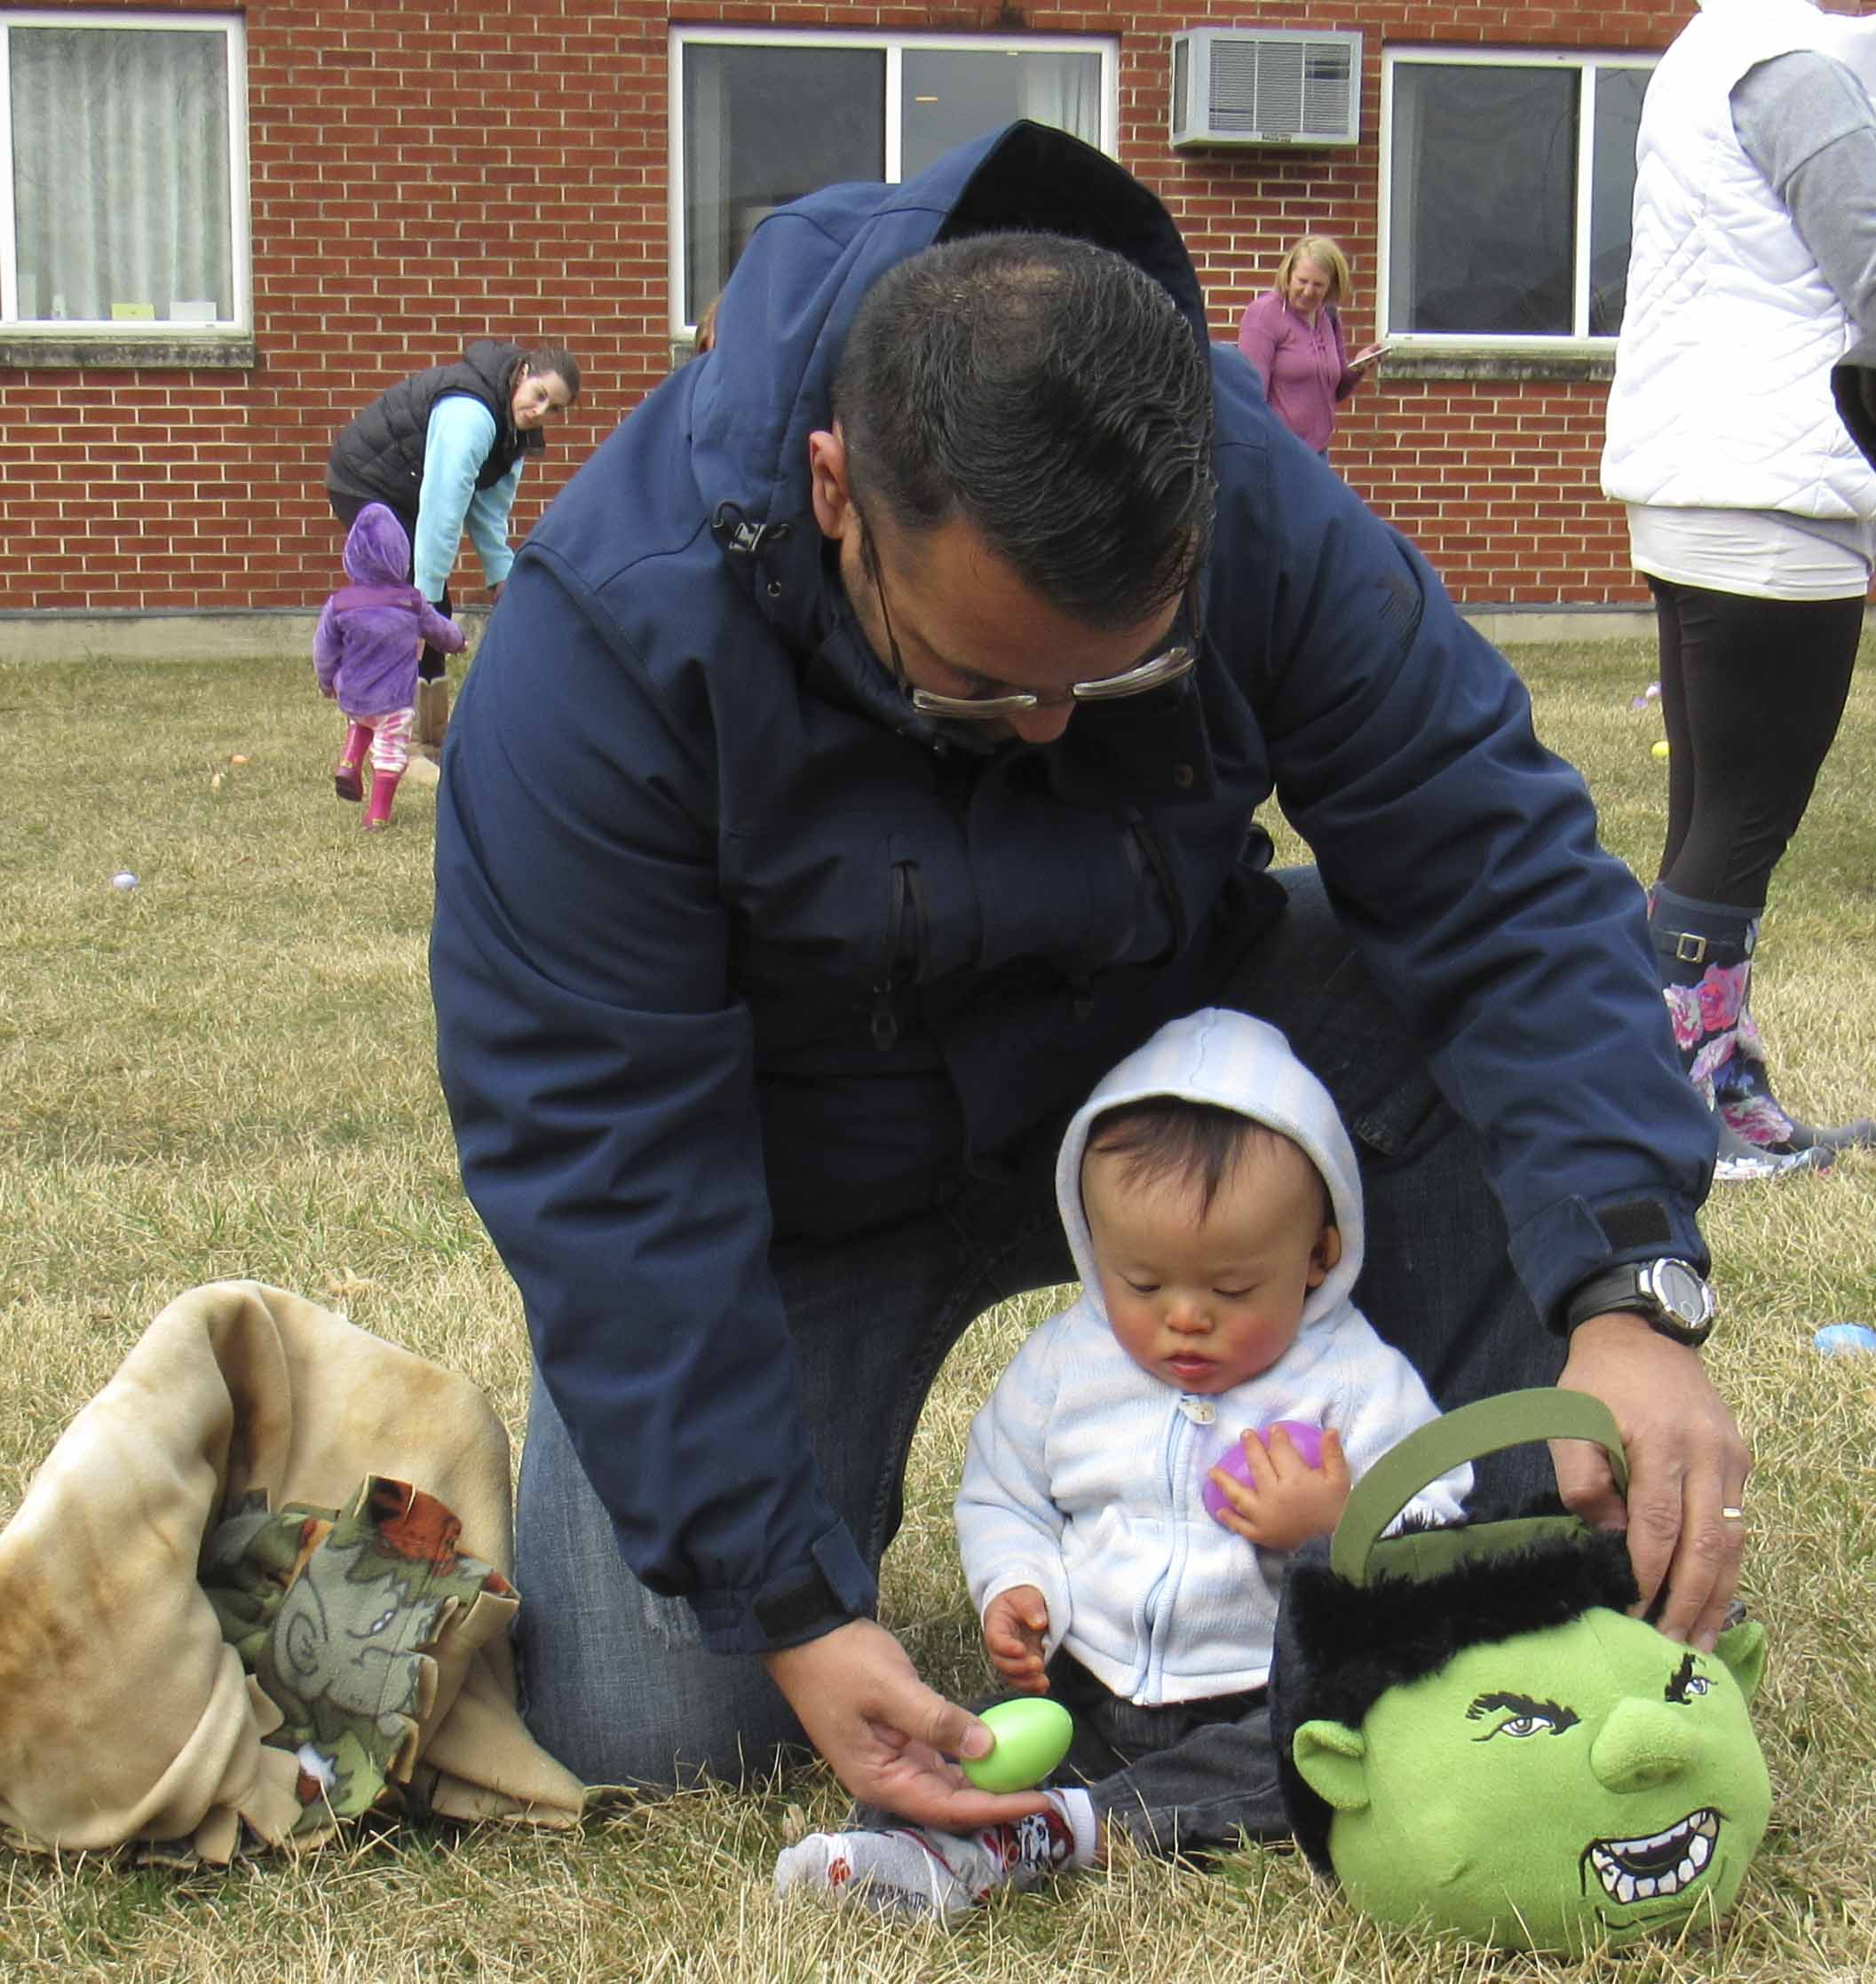 Rolondo Morales helps his son Alan during the Easter egg hunt, March 31, at Monticello Nursing and Rehab Center. (Photos by Kim Brooks)